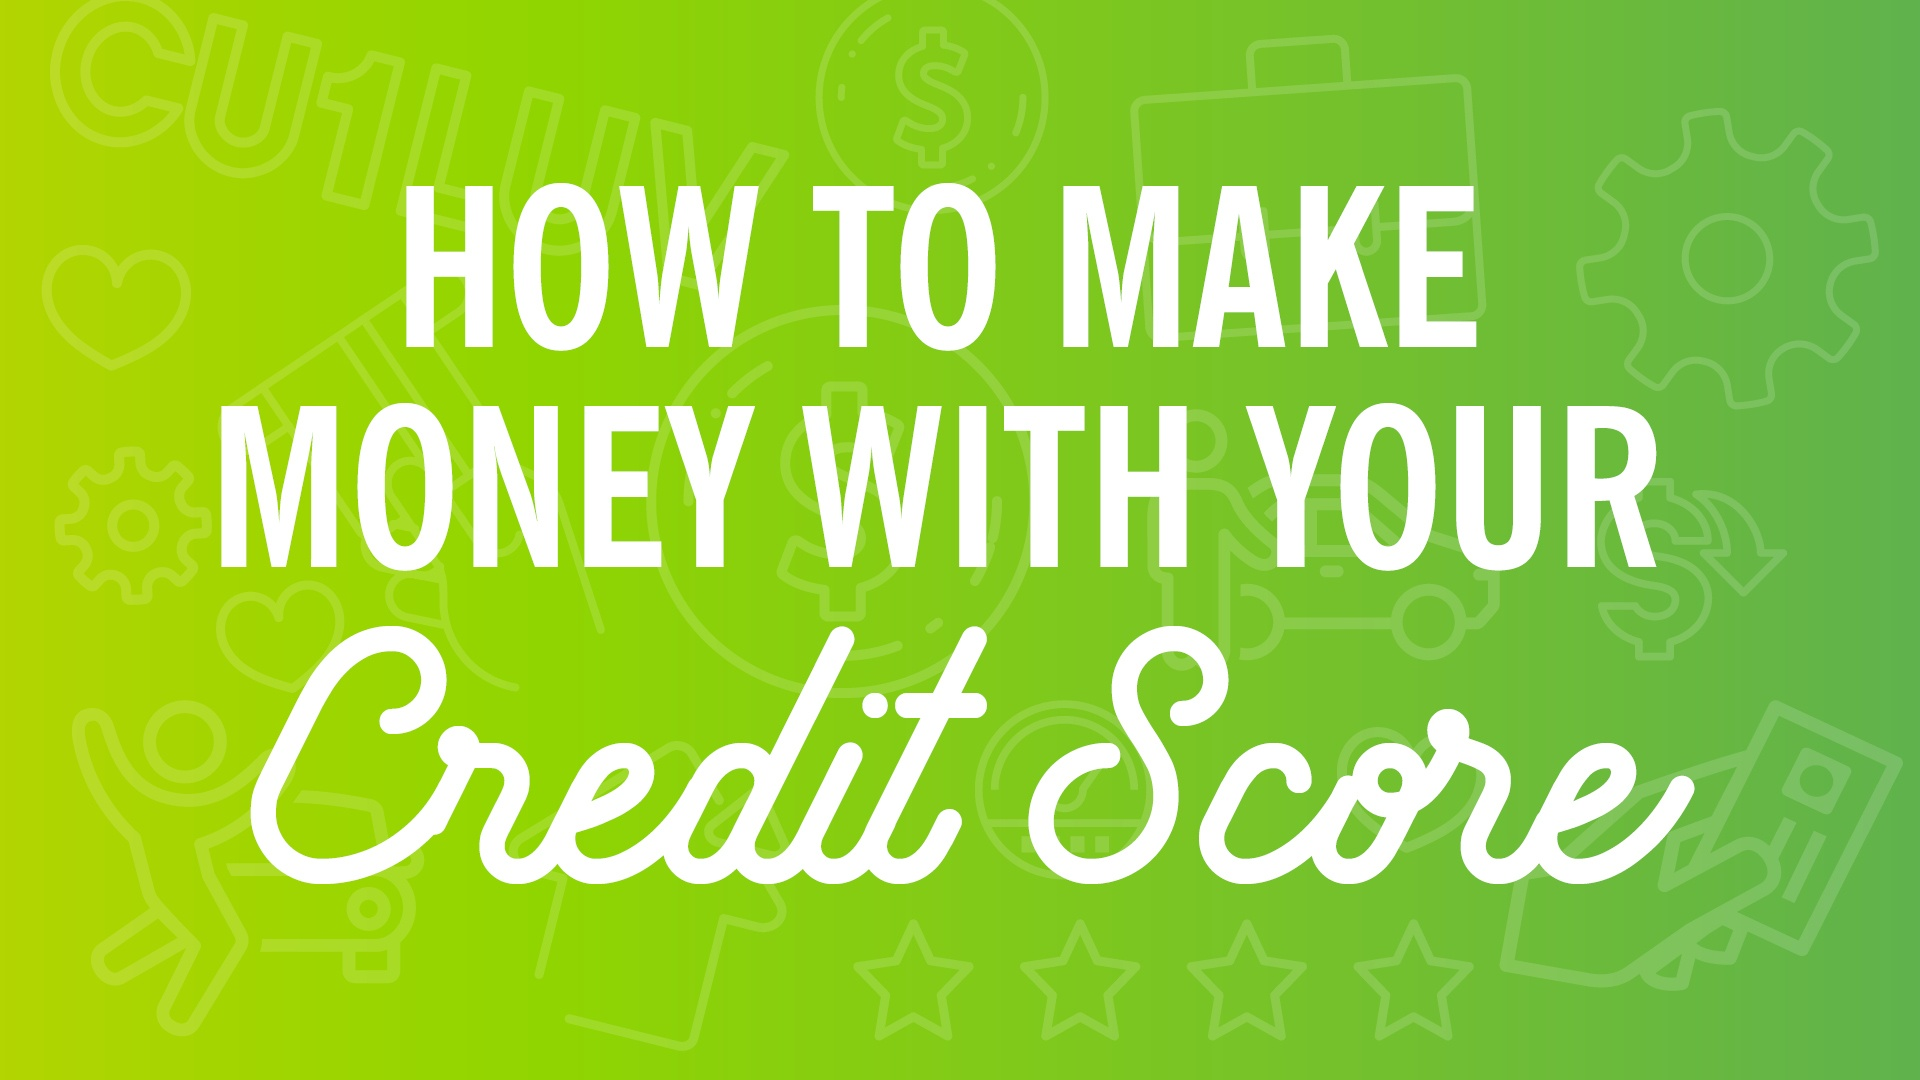 blog-savvymoney-how-to-make-money-with-your-credit-score